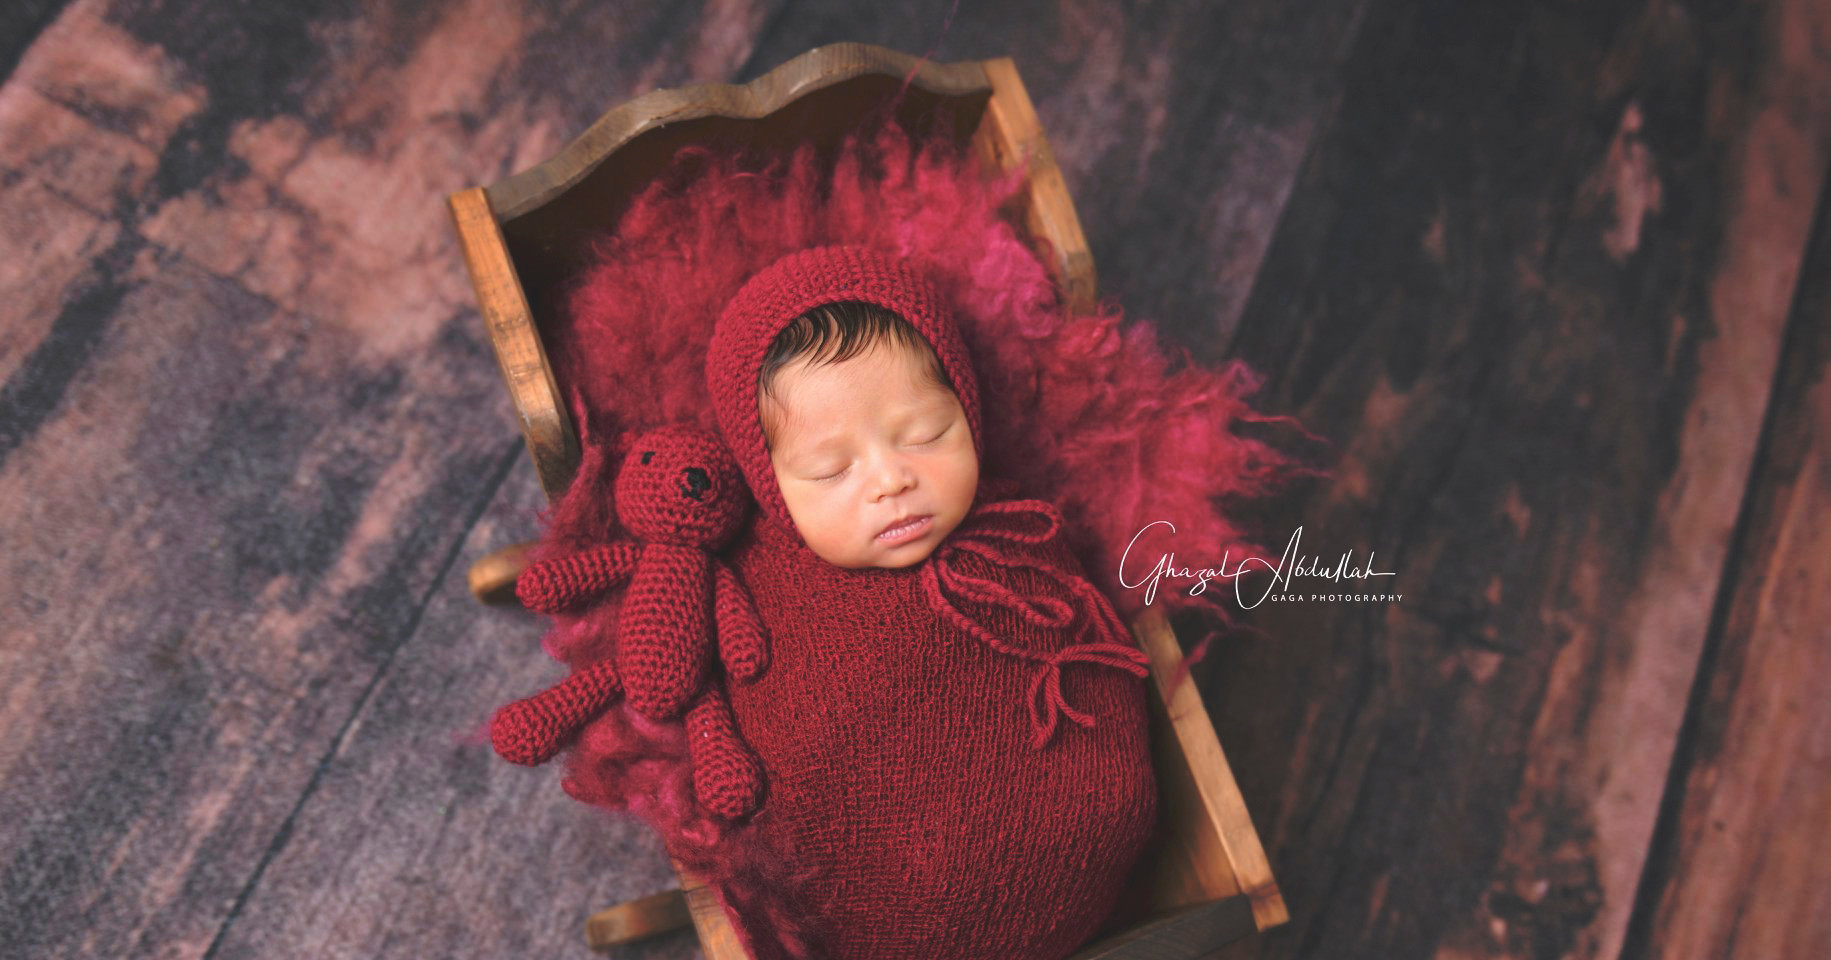 Newborn Photographer, newborn photographers, Newborn Photographer in Dubai, Newborn Photographer Dubai, Baby Photographer in Dubai